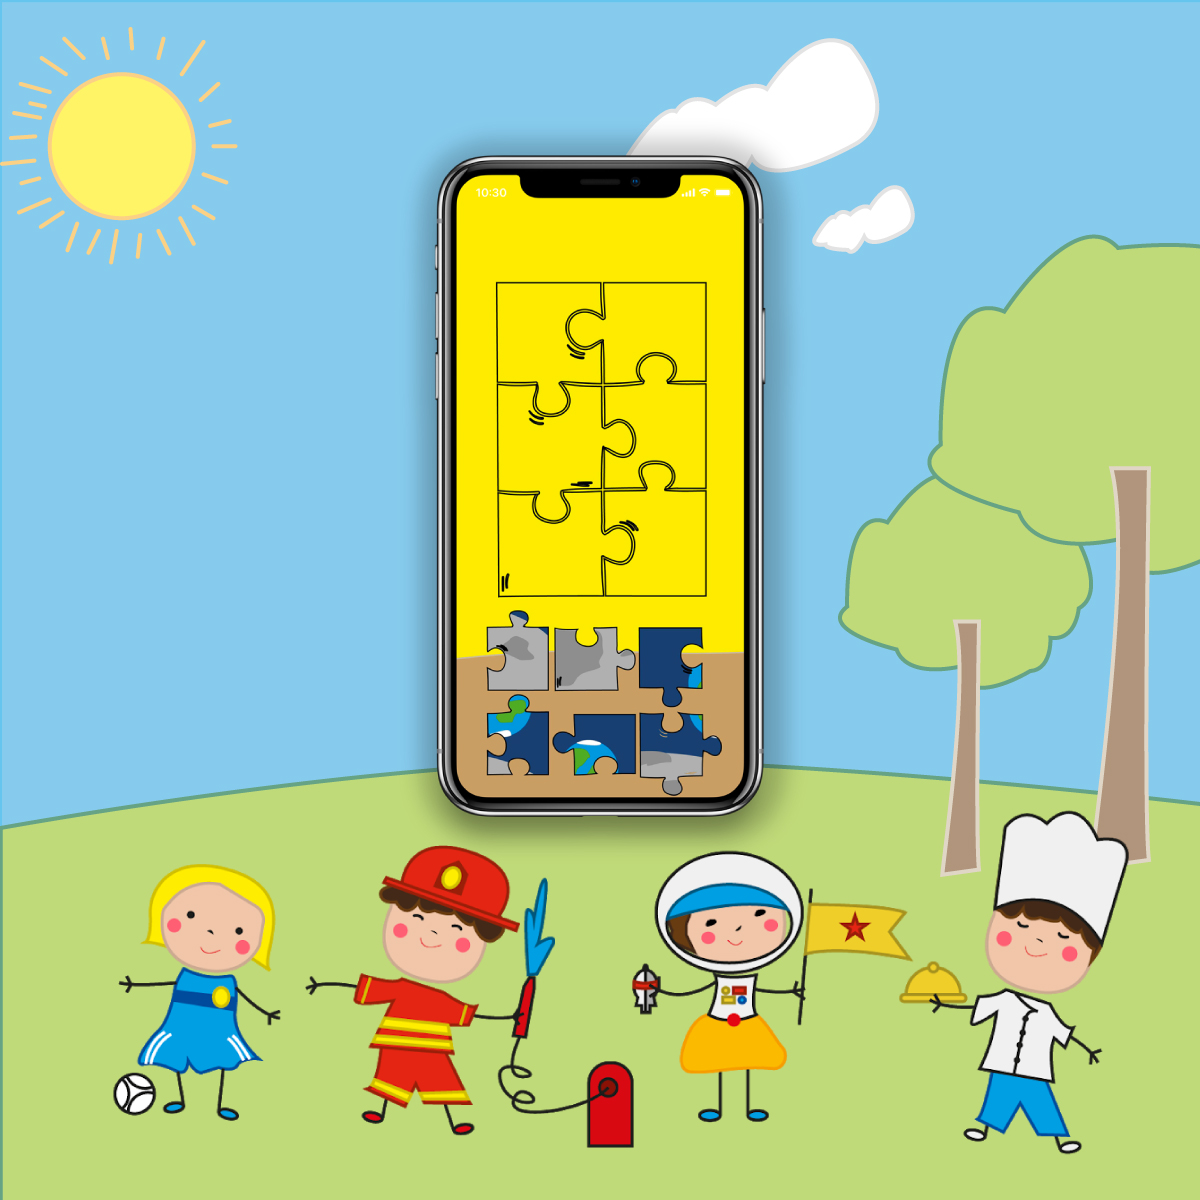 Colourful Children ducational game design